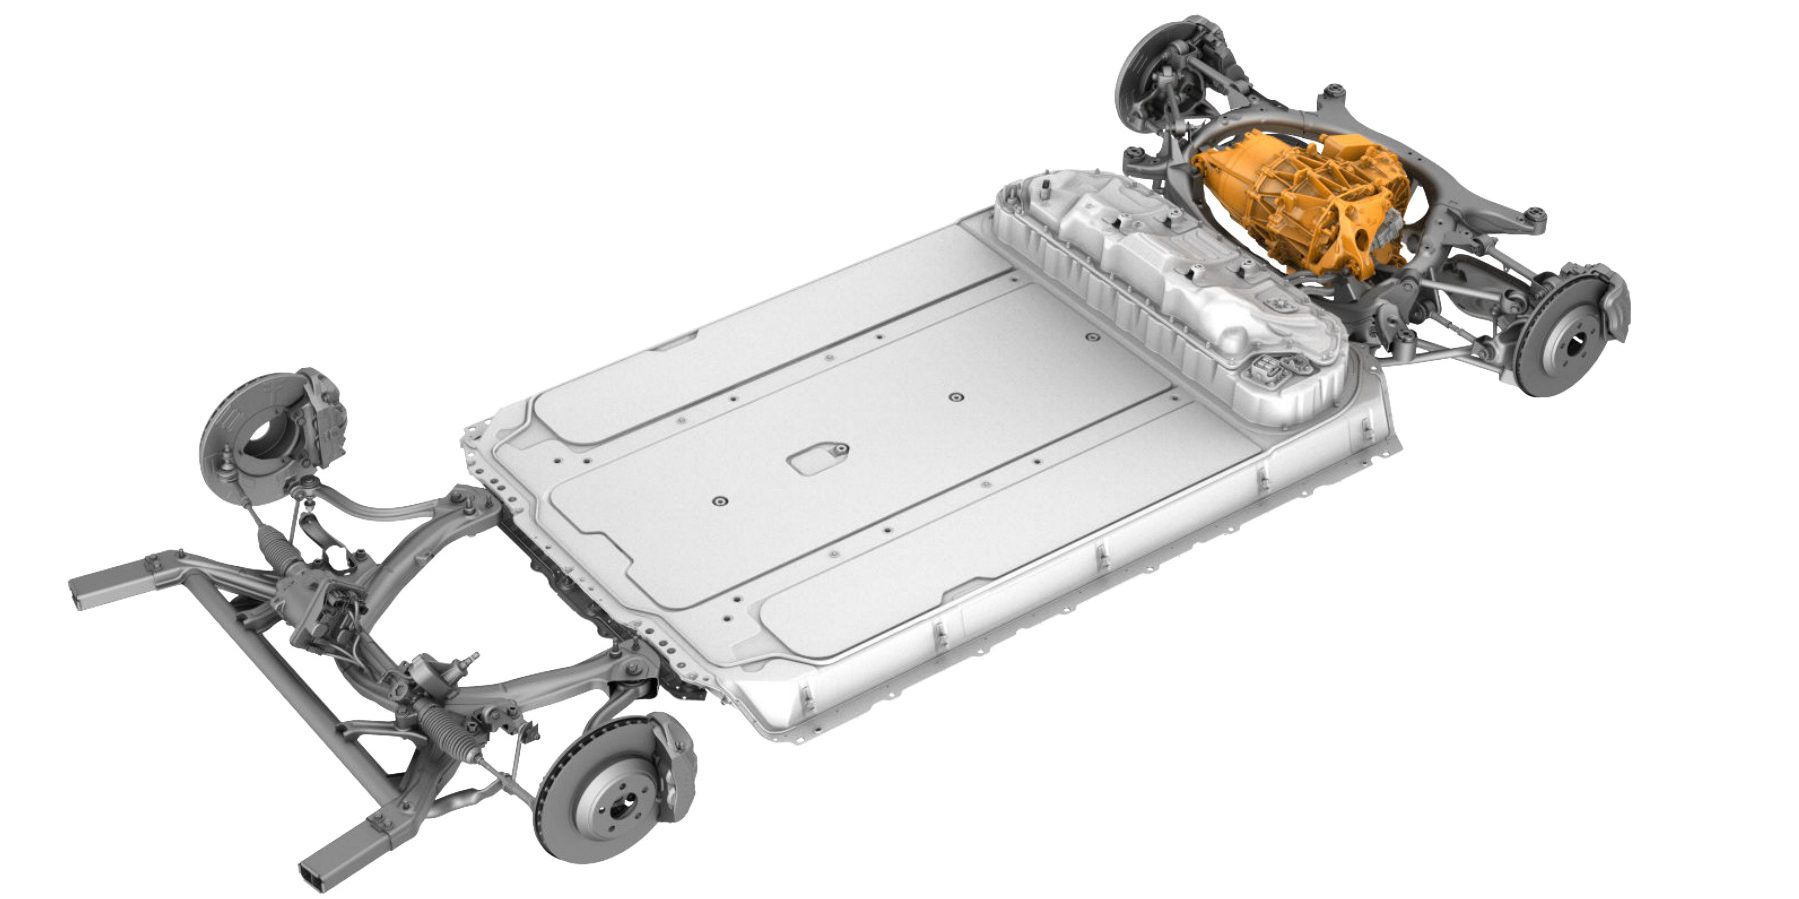 tesla model 3 interesting look at powertrain and chassis through chevrolet cruze engine diagram tesla model 3 interesting look at powertrain and chassis through first responders guide